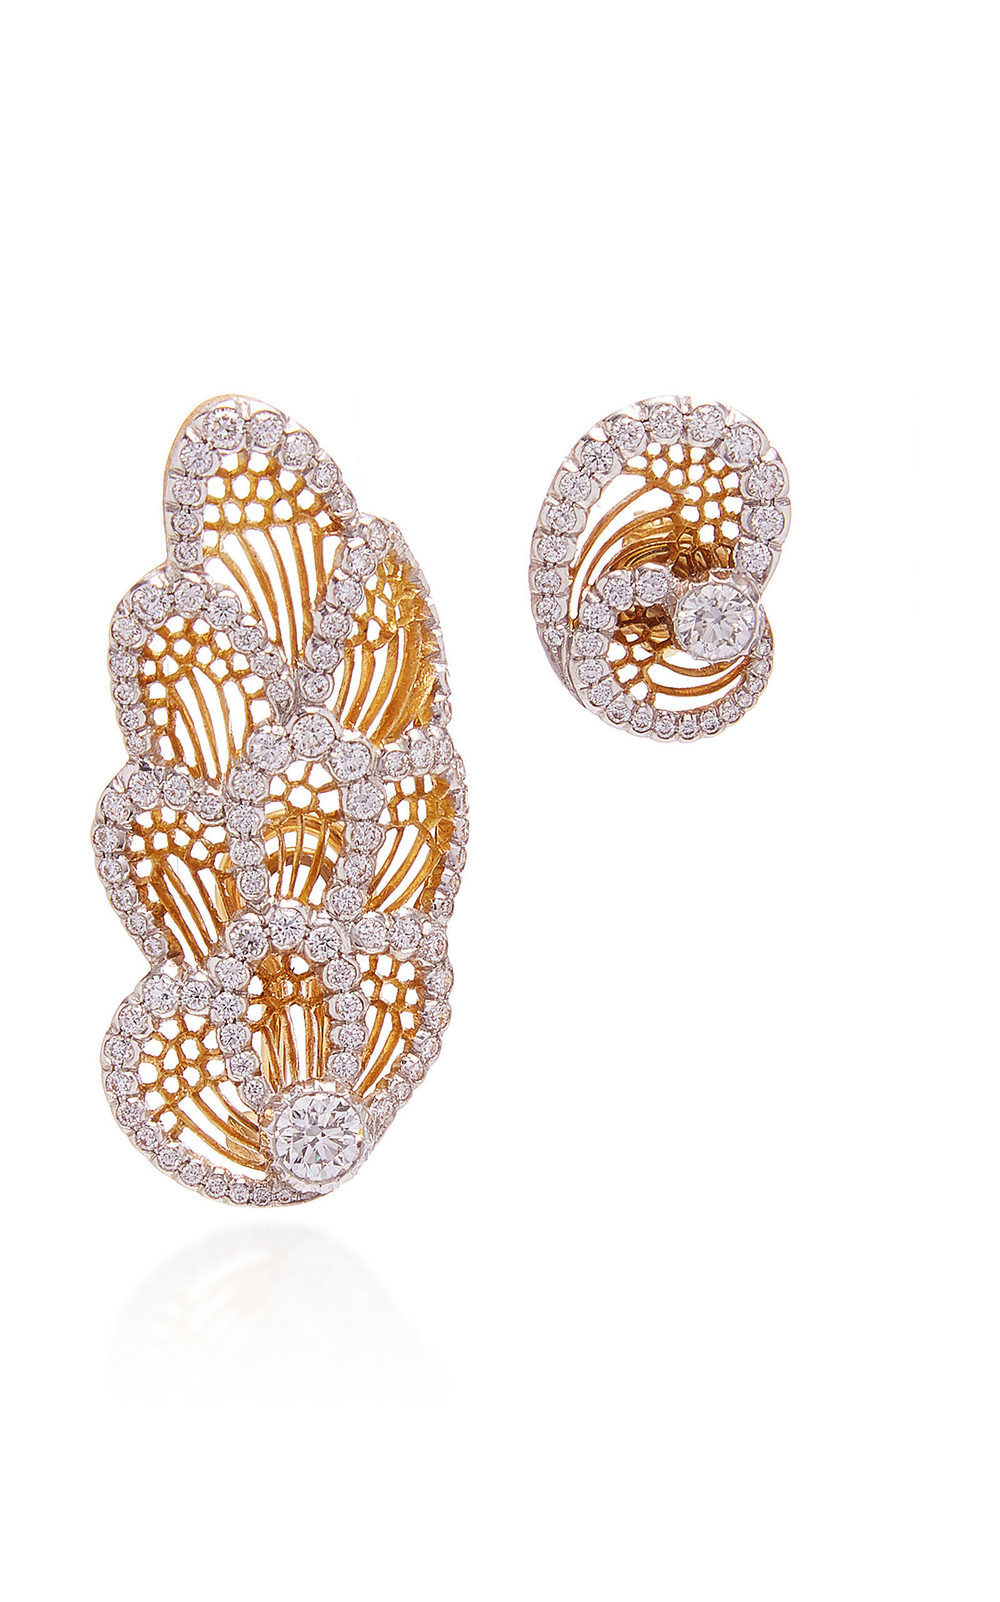 Buccellati Redon Honeycomb Earrings in gold